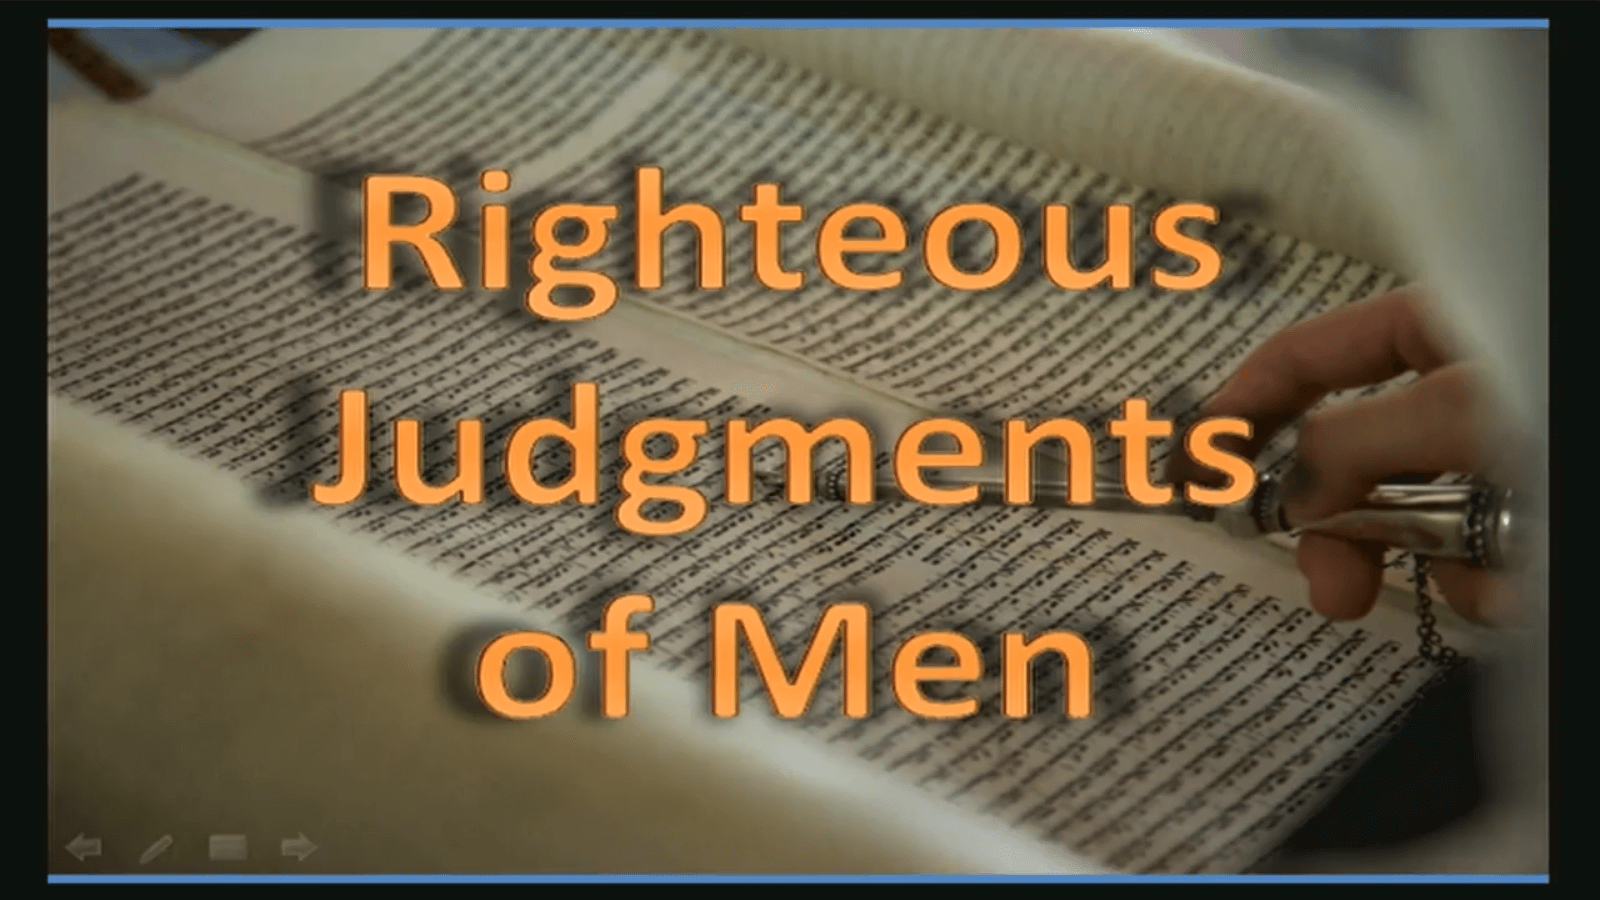 Righteous Judgments of Men